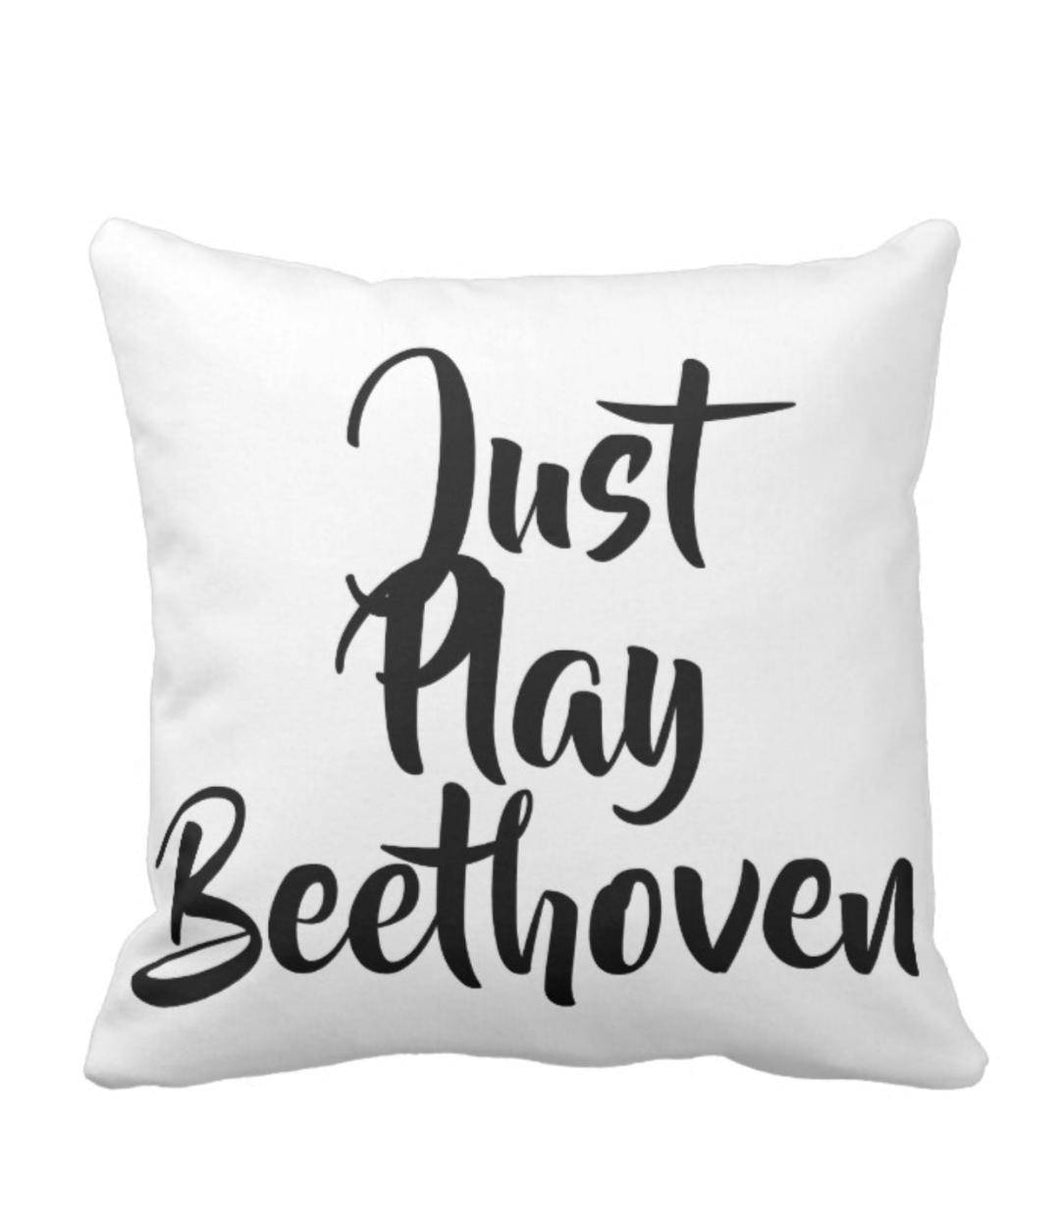 Throw Pillow Just Play Beethoven